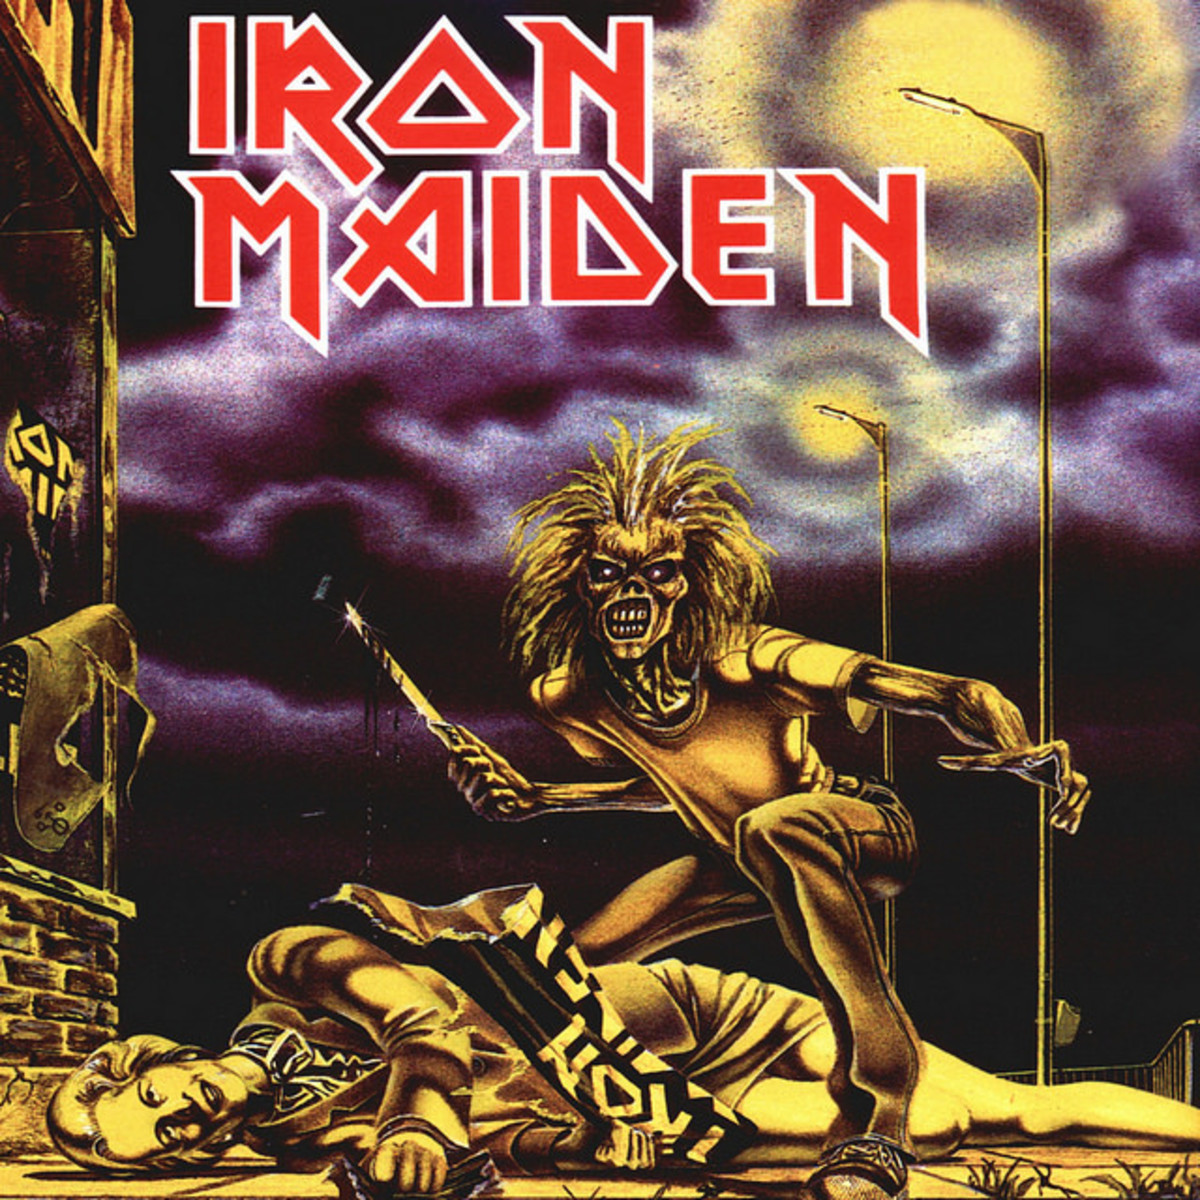 "Iron Maiden ""Sanctuary"" EMI 5065 Uncensored 7"" Vinyl Single UK Pressing (1980) Picture Sleeve Art by Derek Riggs"